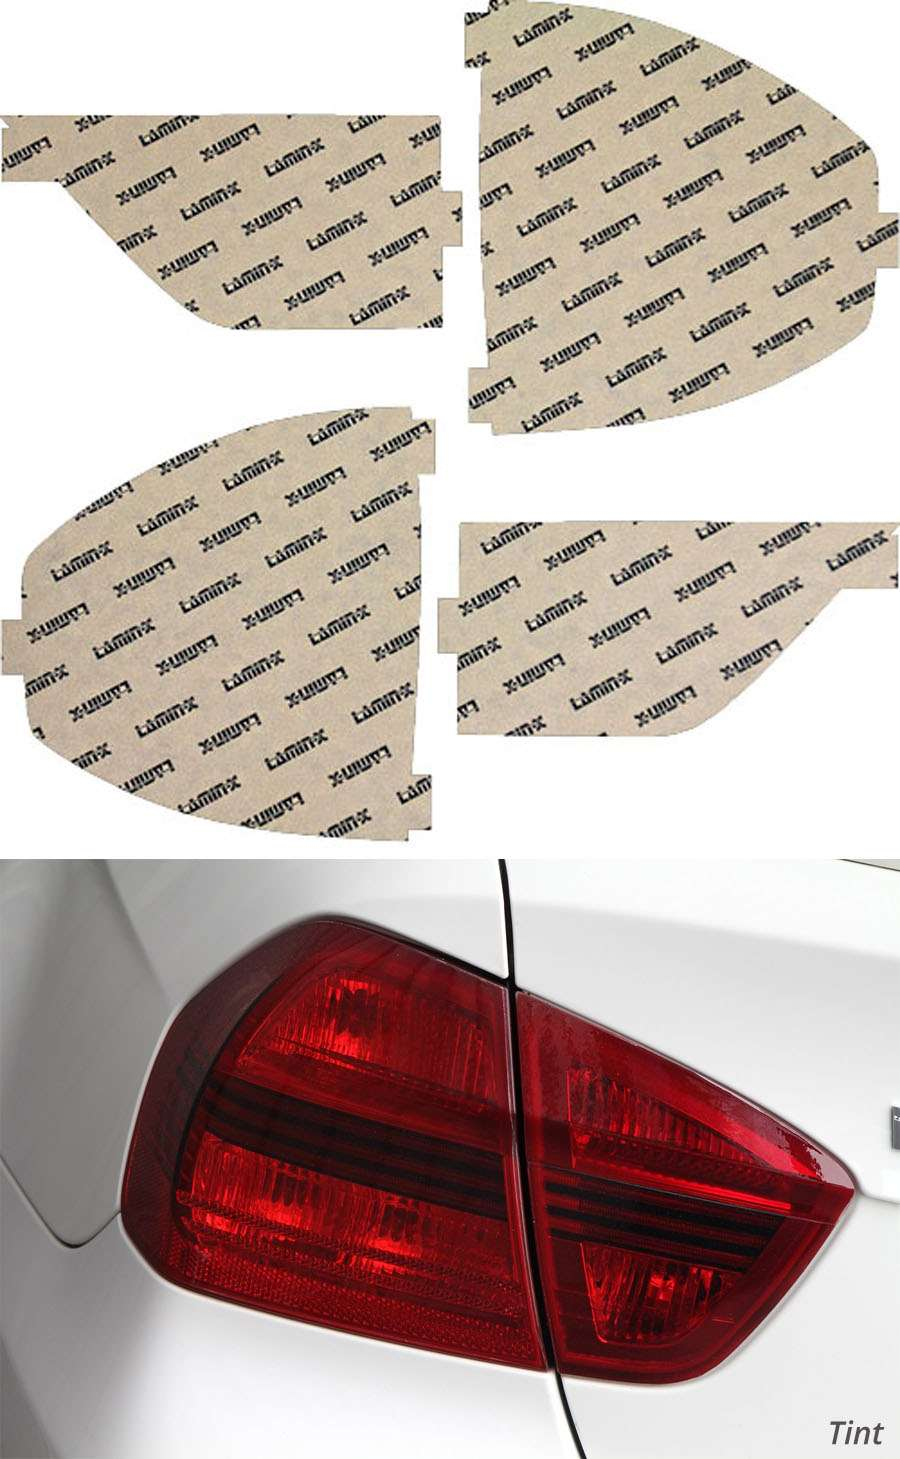 Lamin-X Tail Light Covers - Lamin-X B215